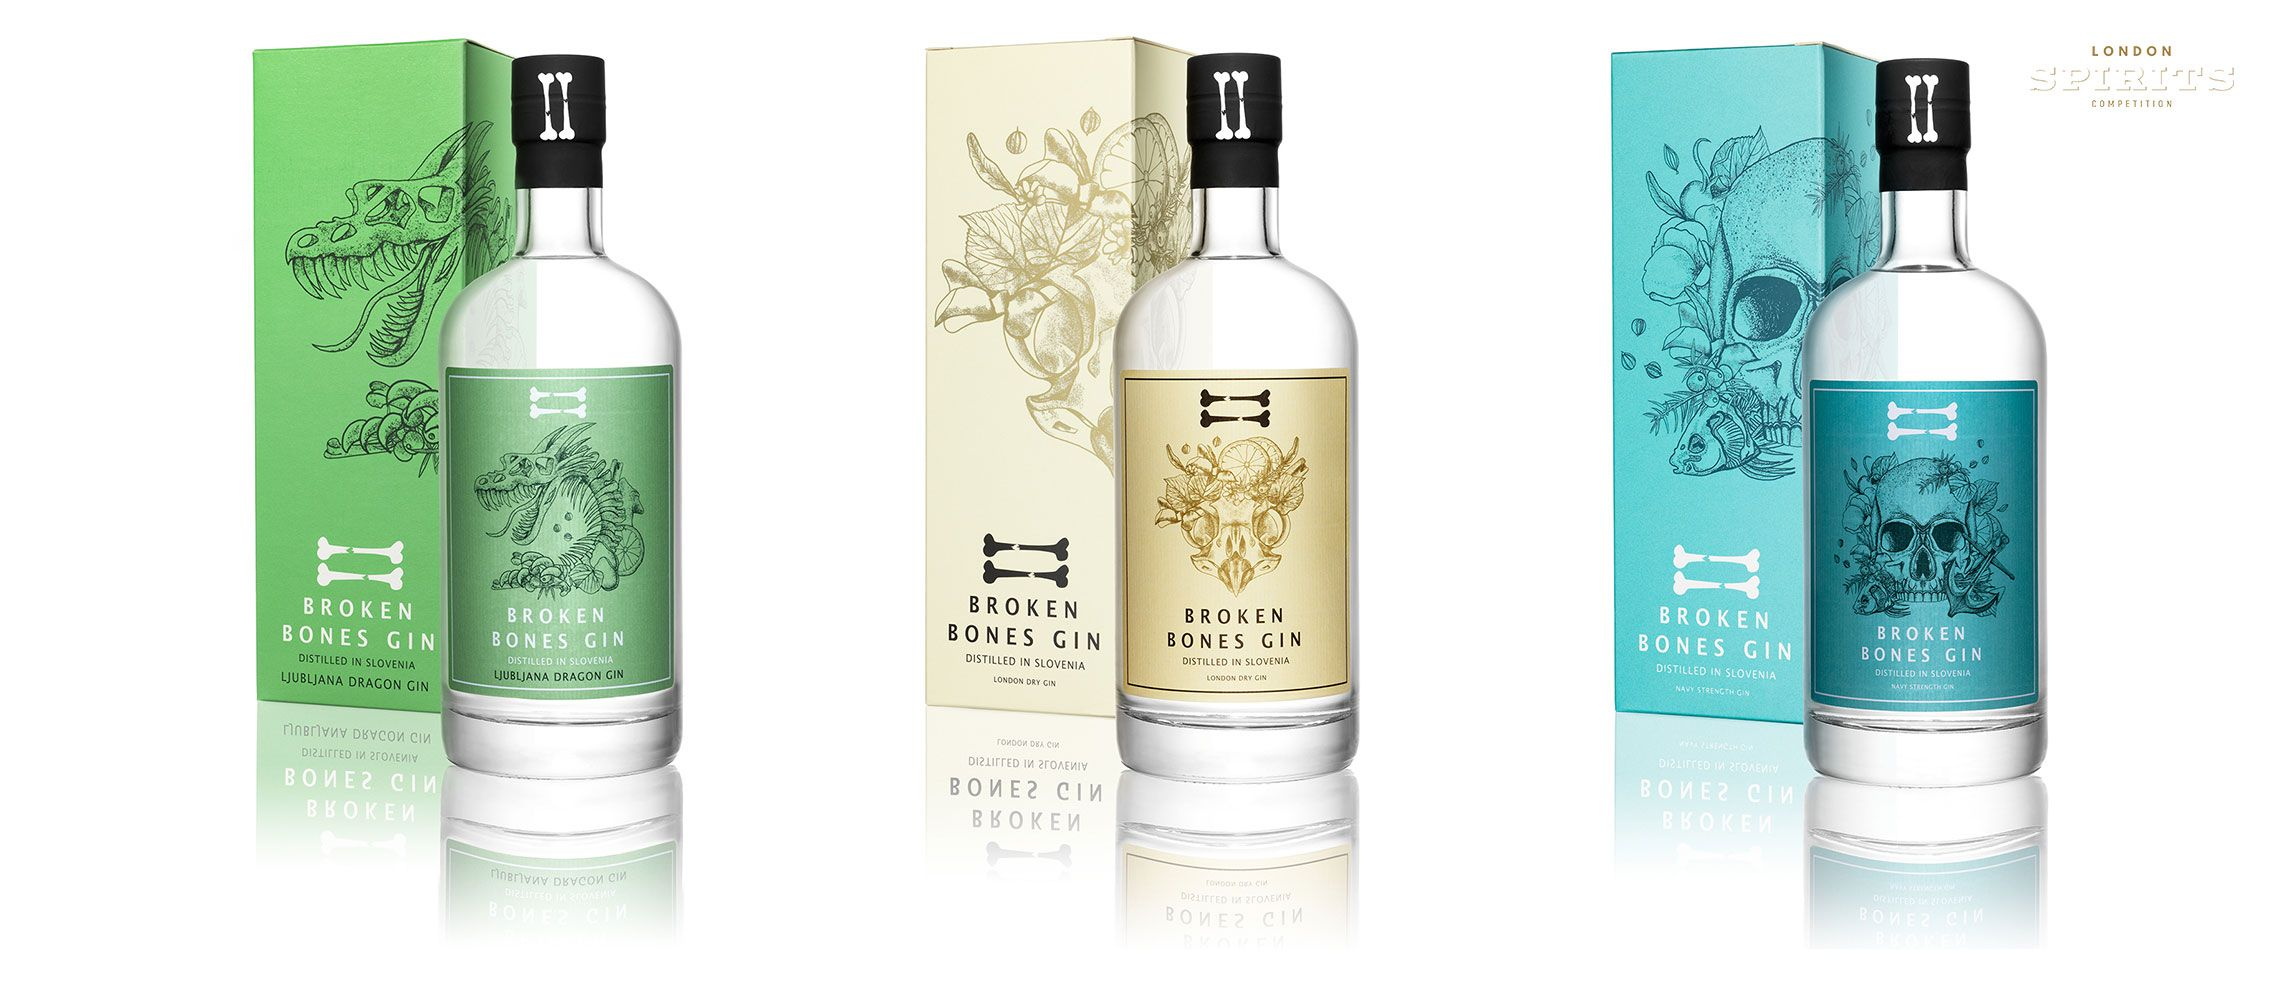 Photo for: Most Delicious Slovenian Gins To Stock Your Liquor-Cabinets